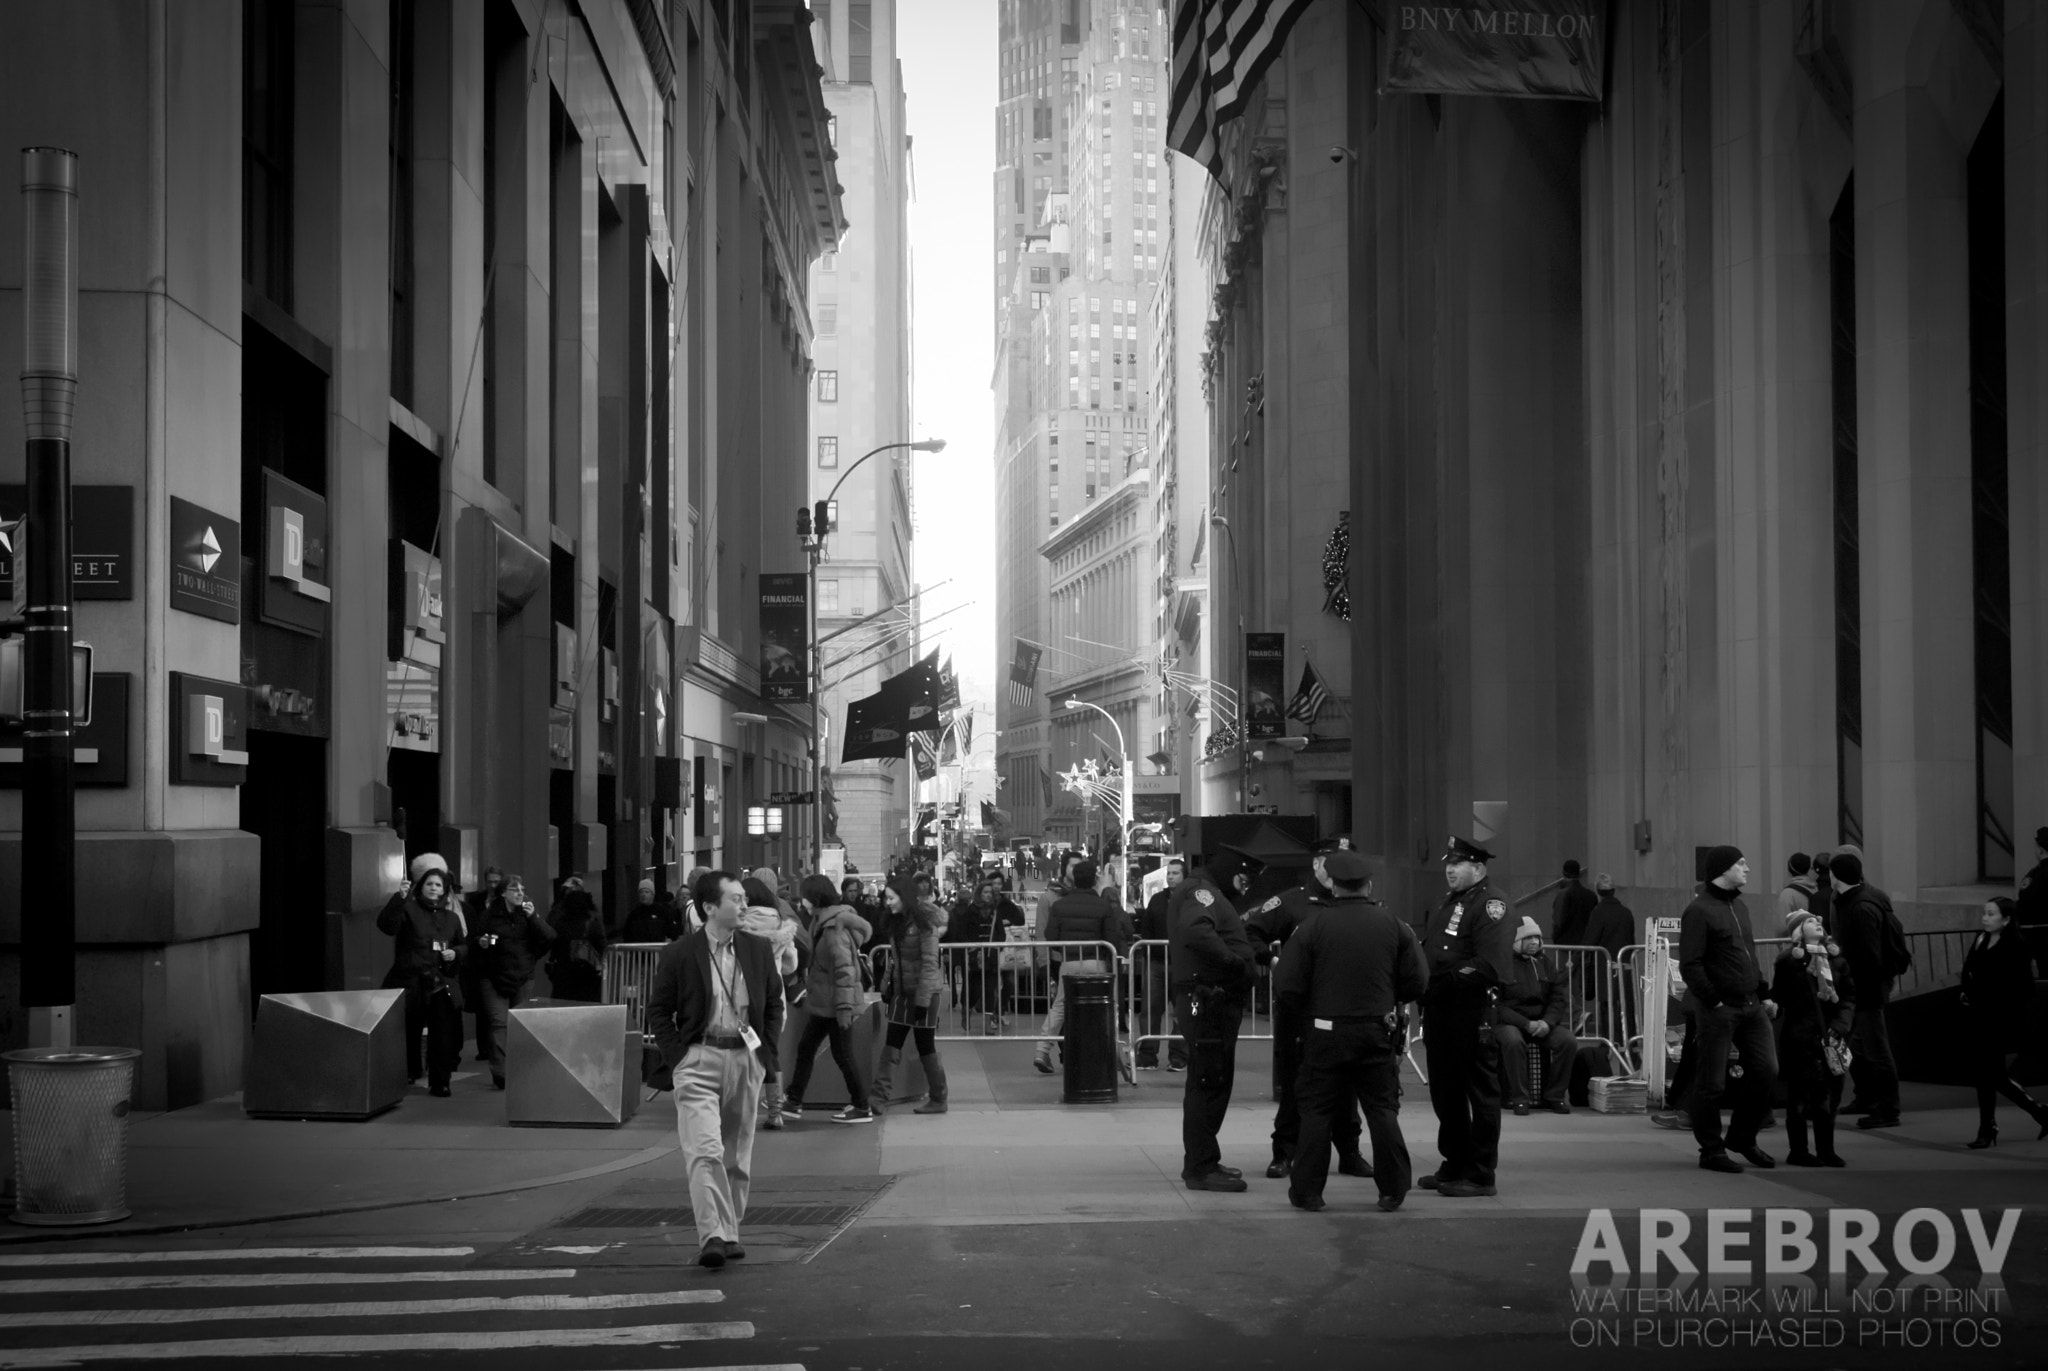 Photograph Wall Street, New York by Alexei Rebrov on 500px